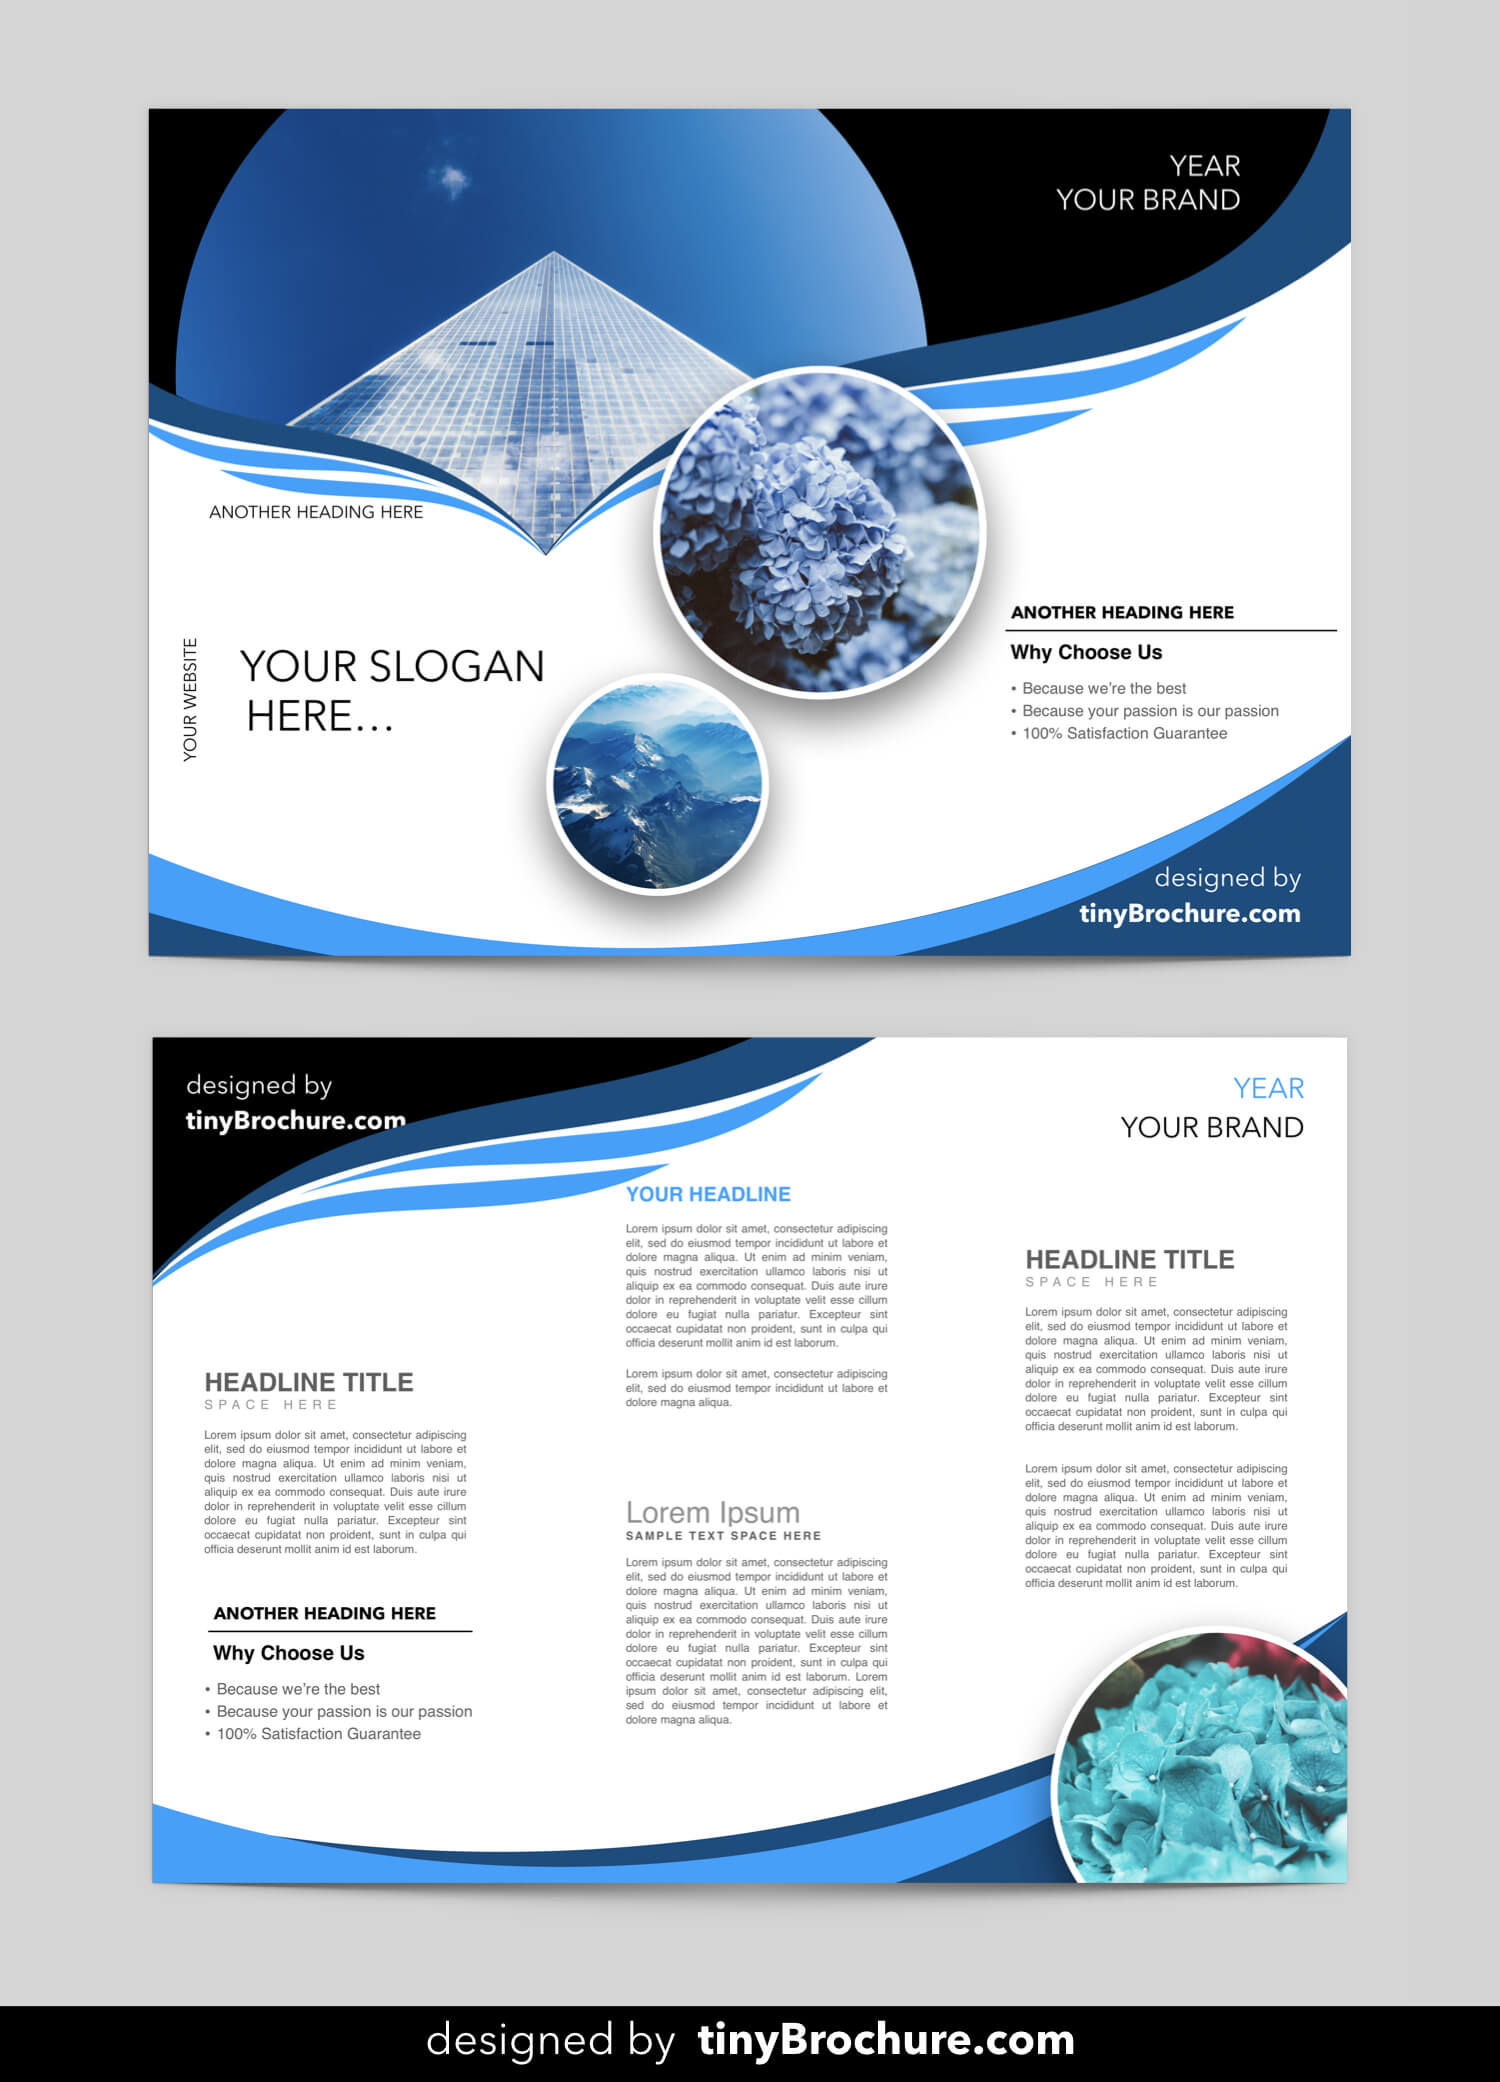 003 Microsoft Brochure Template Free Ideas Wondrous Pertaining To Free Brochure Templates For Word 2010